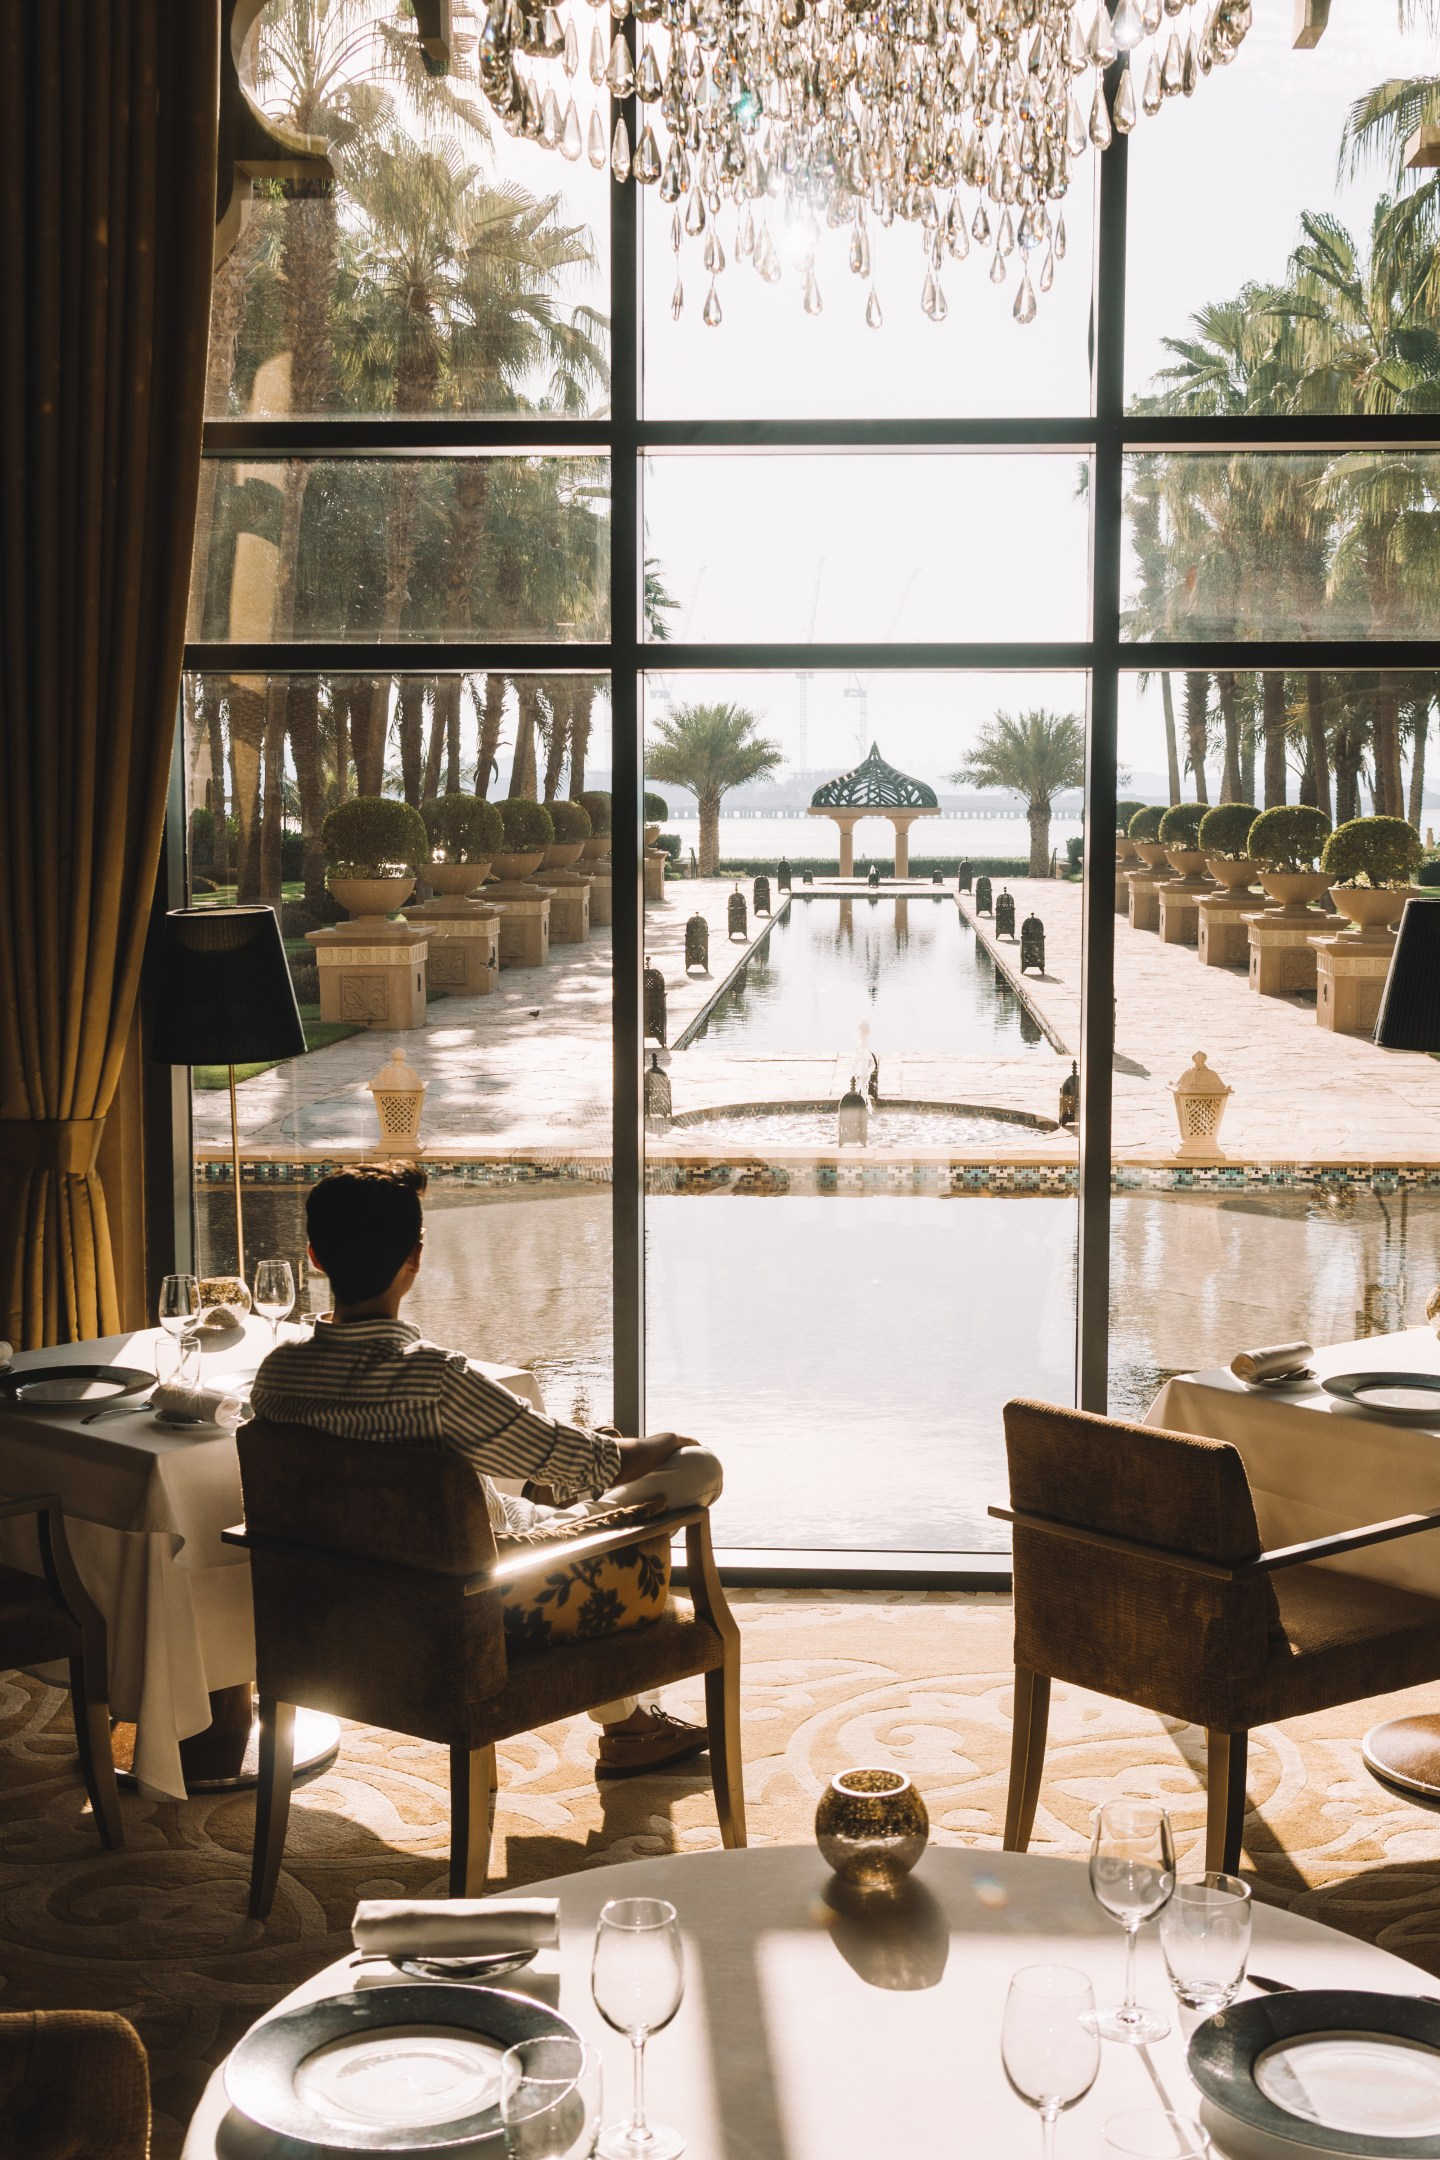 AN ARABIC EXPERIENCE: ONE&ONLY ROYAL MIRAGE DUBAI